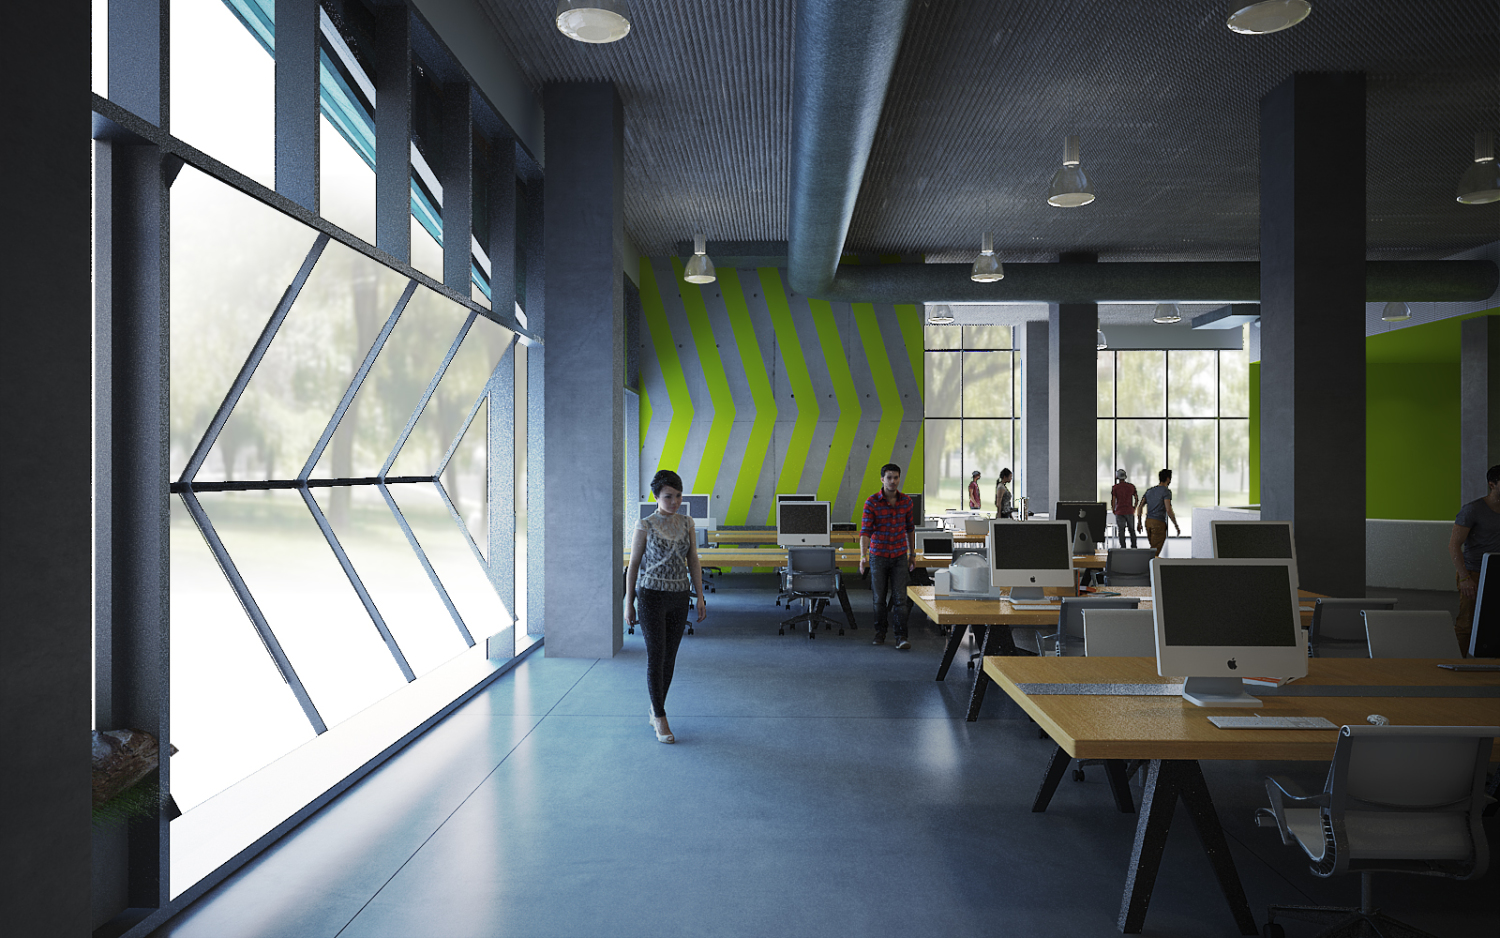 Incubator spaces innovation hubs how to design for Whitespace architects careers